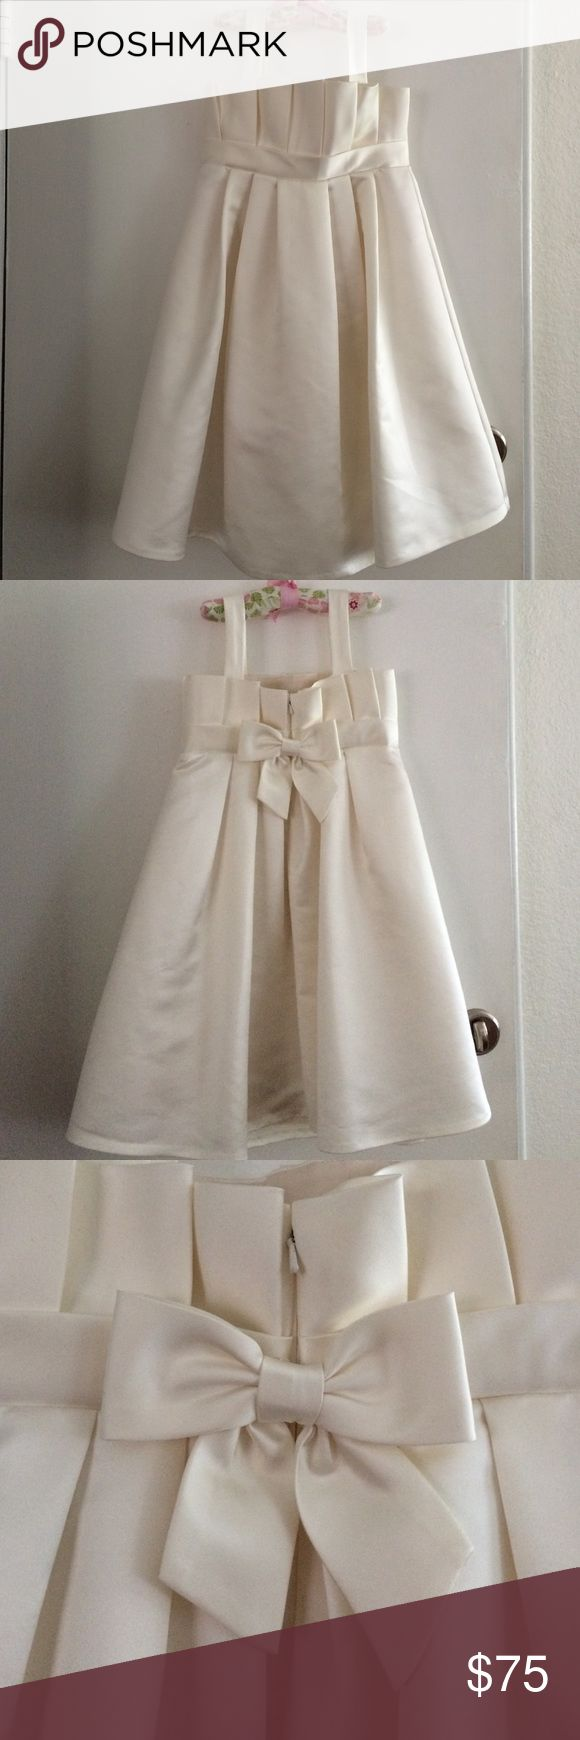 Priscilla of Boston flower girl dress Stunning satin flower girl dress with pleats and bow in back. Size 6X. Worn once for a few hours. Surprisingly no blemishes. Off-white Priscilla of Boston Dresses Formal